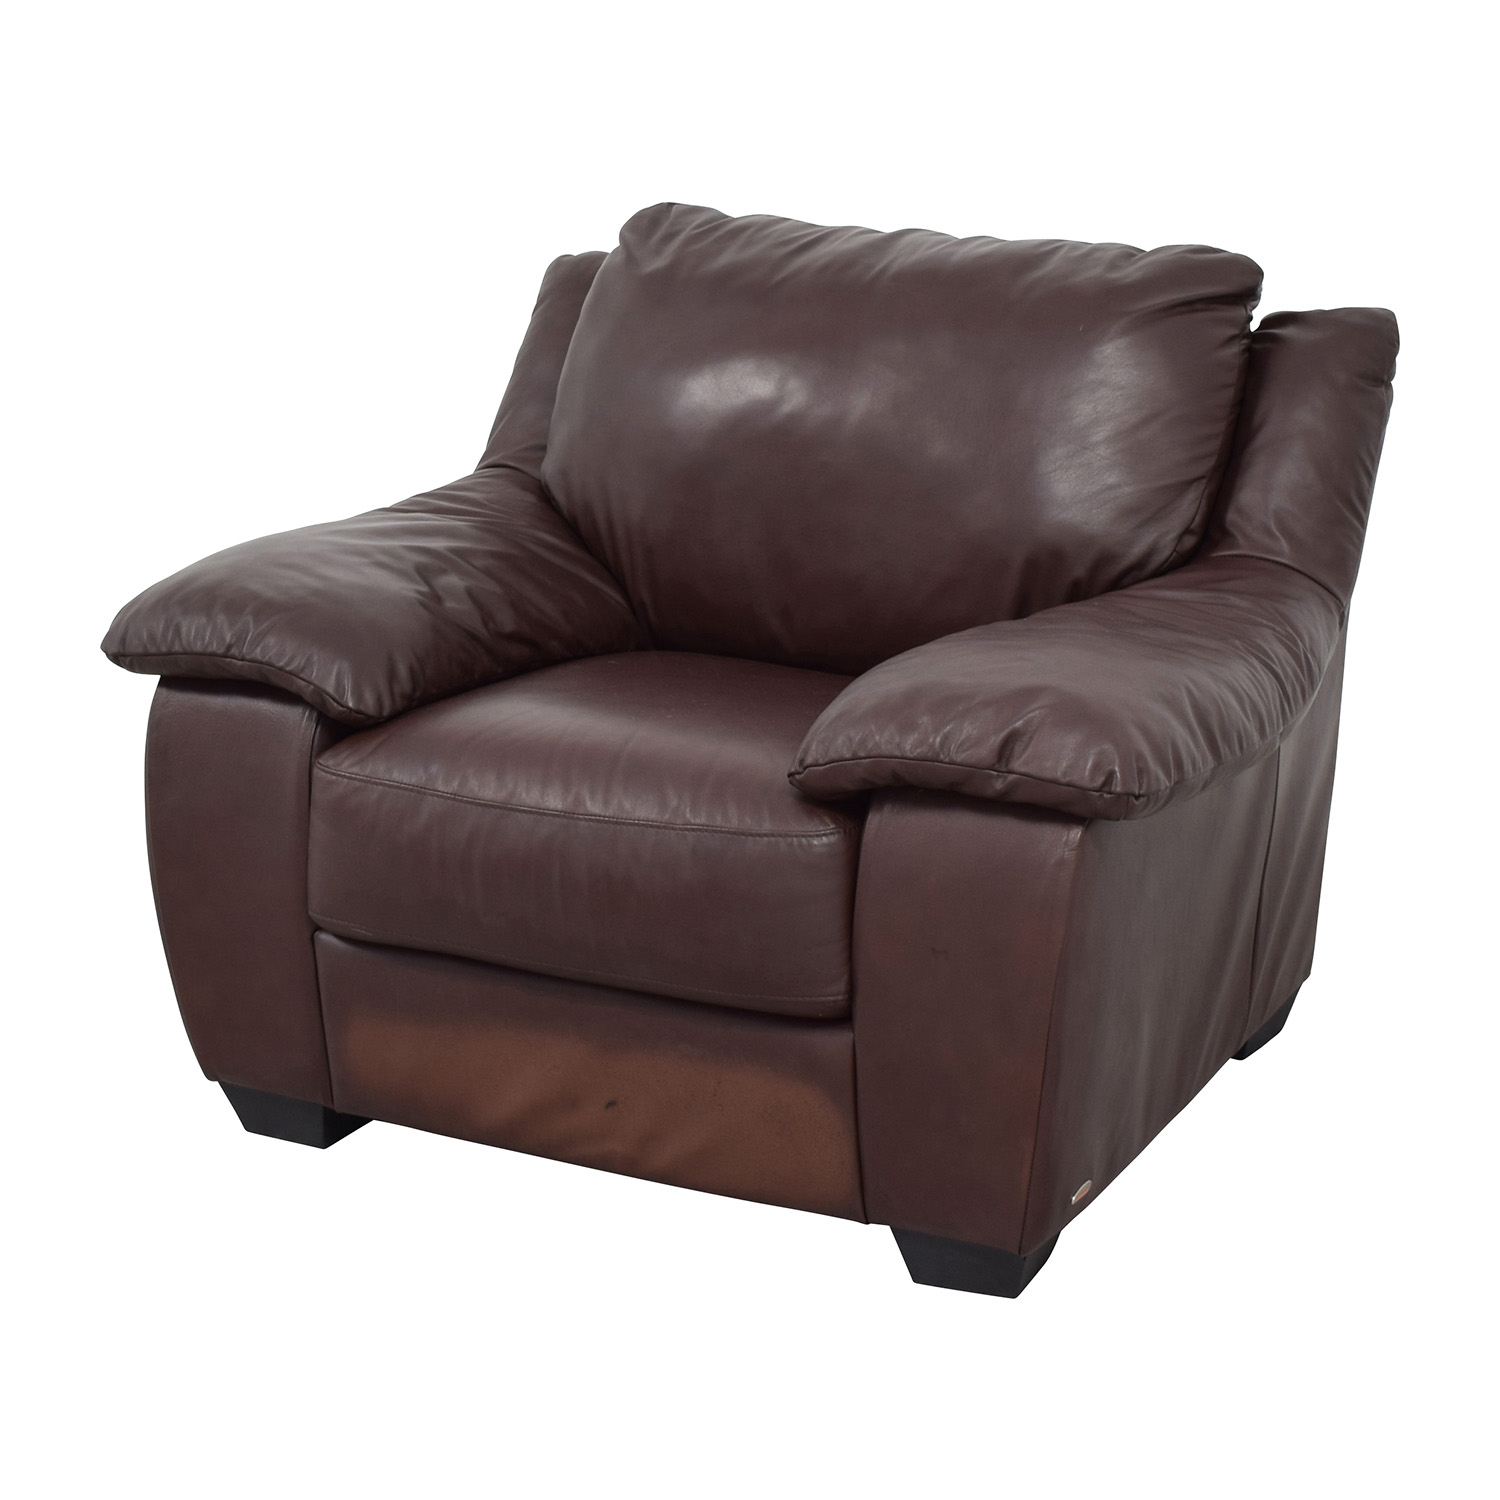 84 Off Natuzzi Italsofa Brown Leather Plush Armchair Chairs